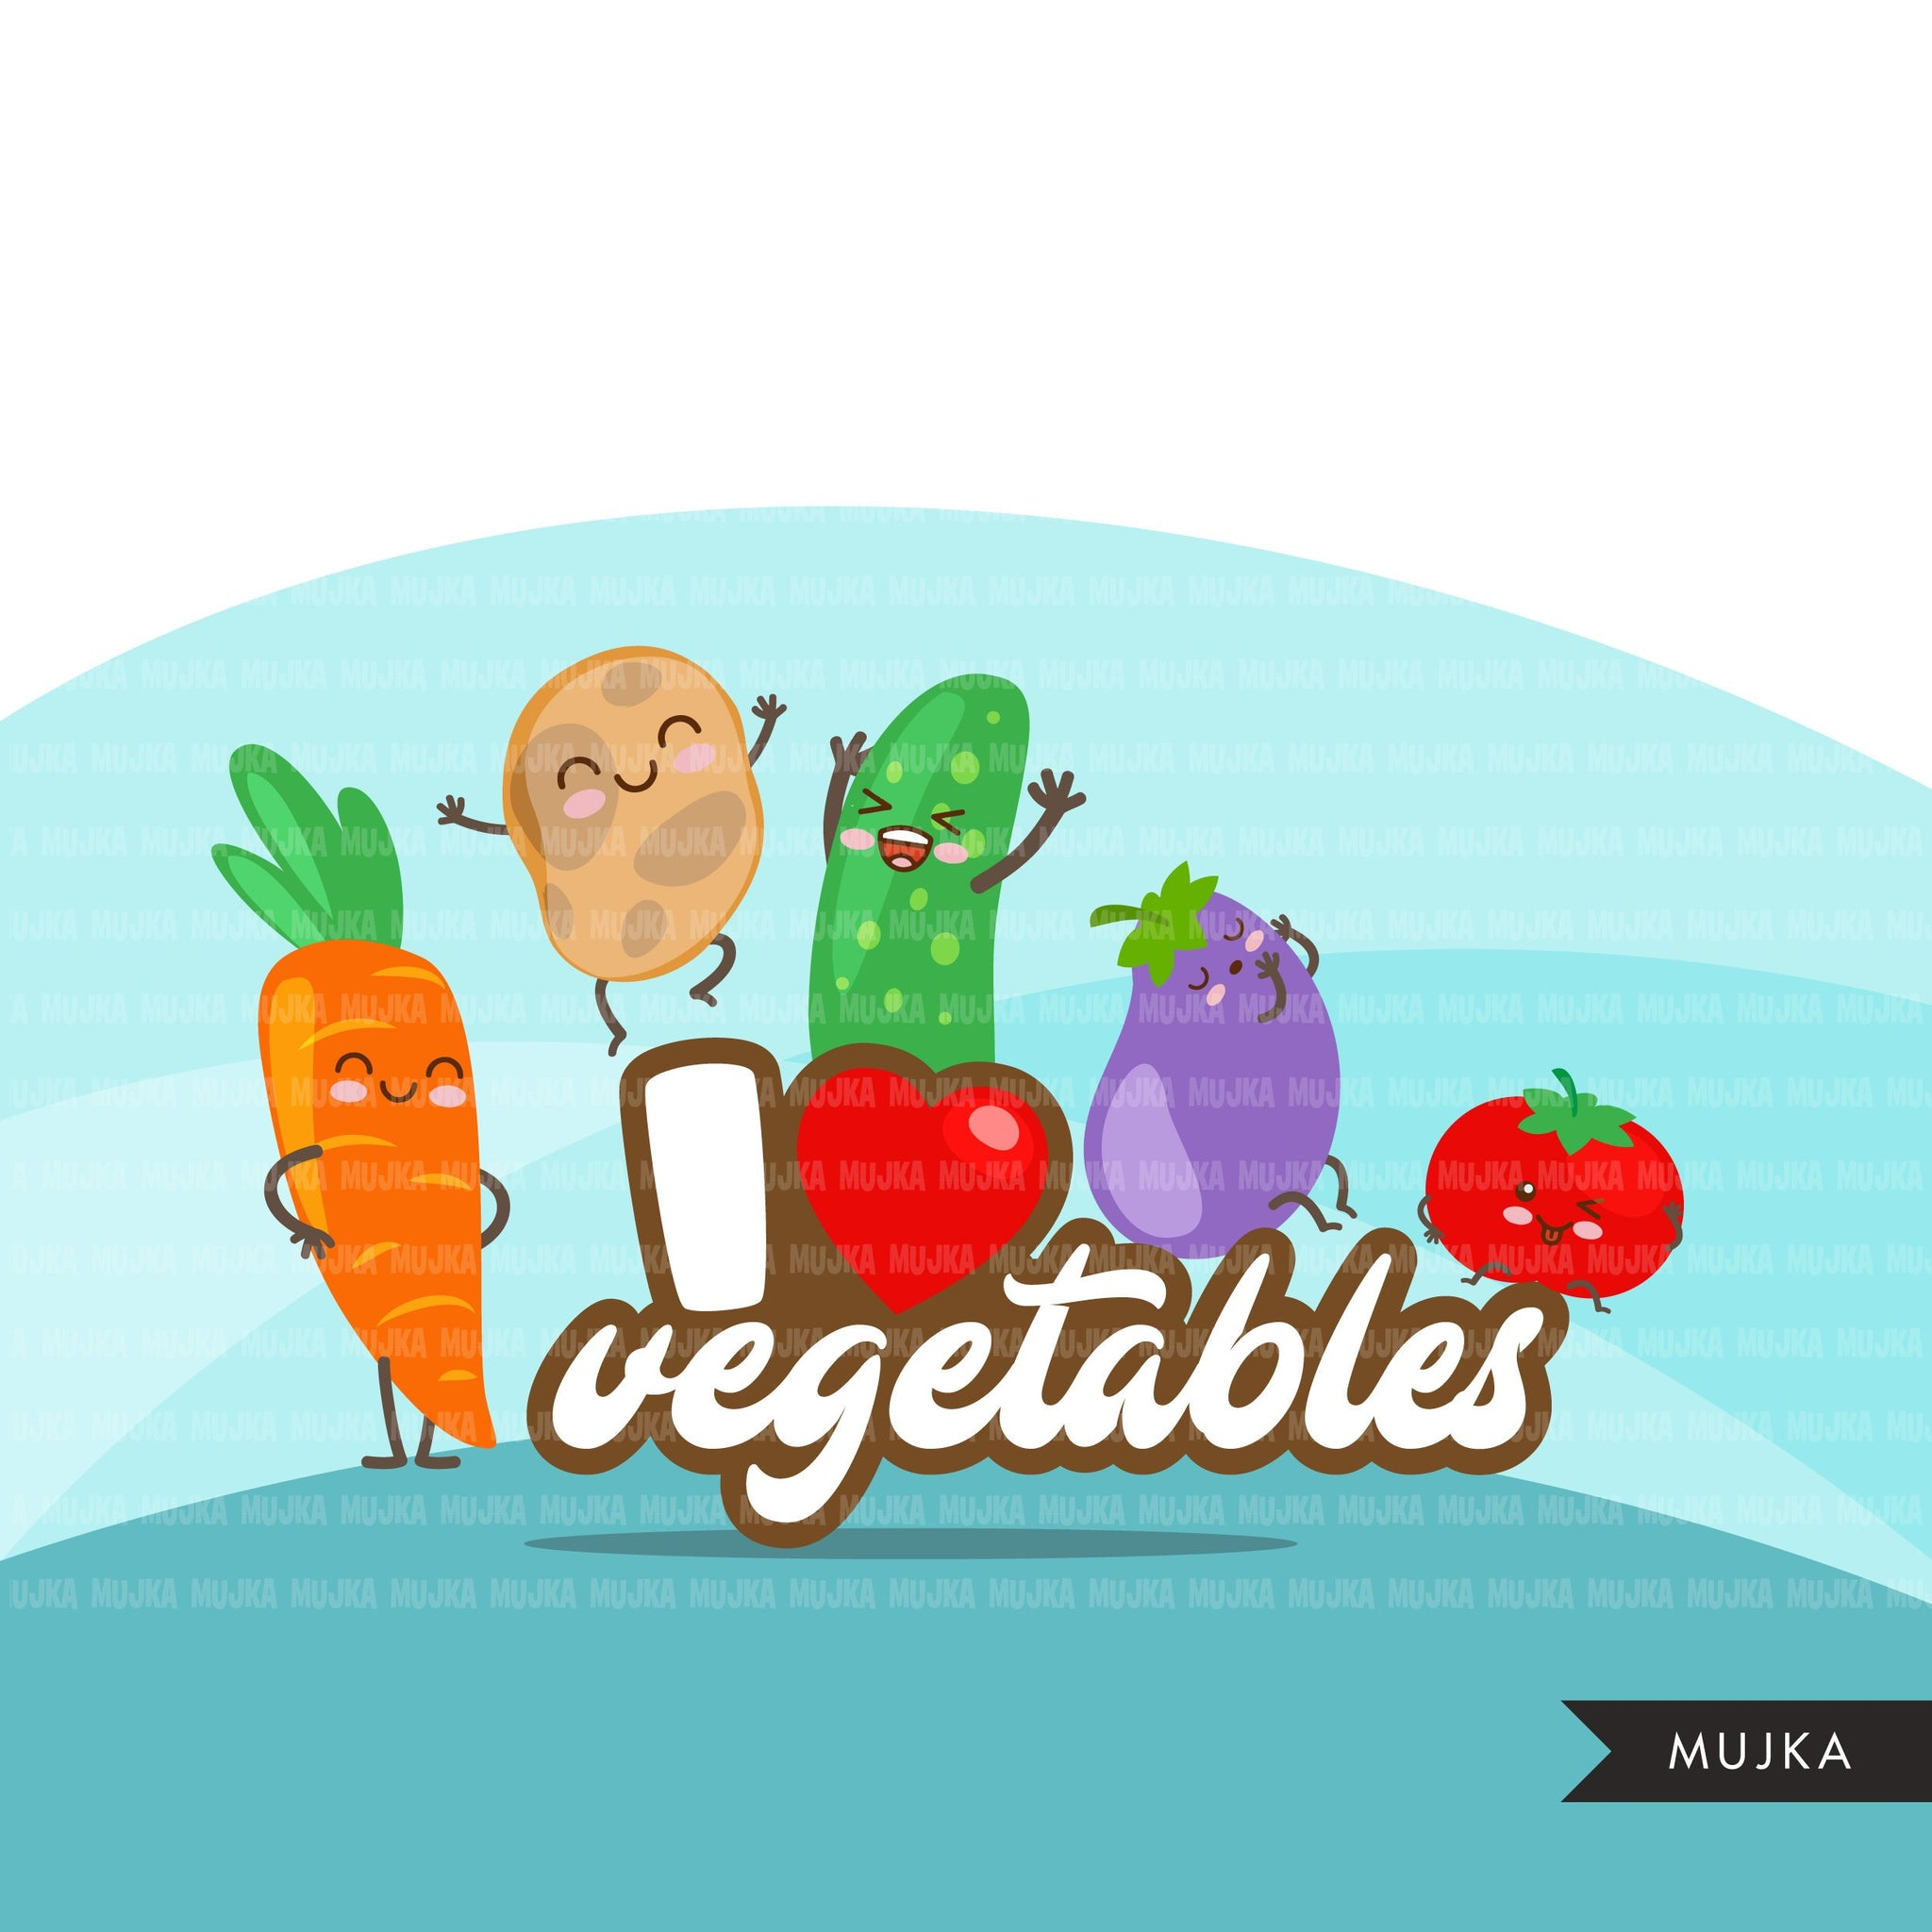 Vegetable clipart, cute kawaii veggie graphics, I love veggies, team veggie quotes, vegetarian PNG t-shirt clip art summer spring